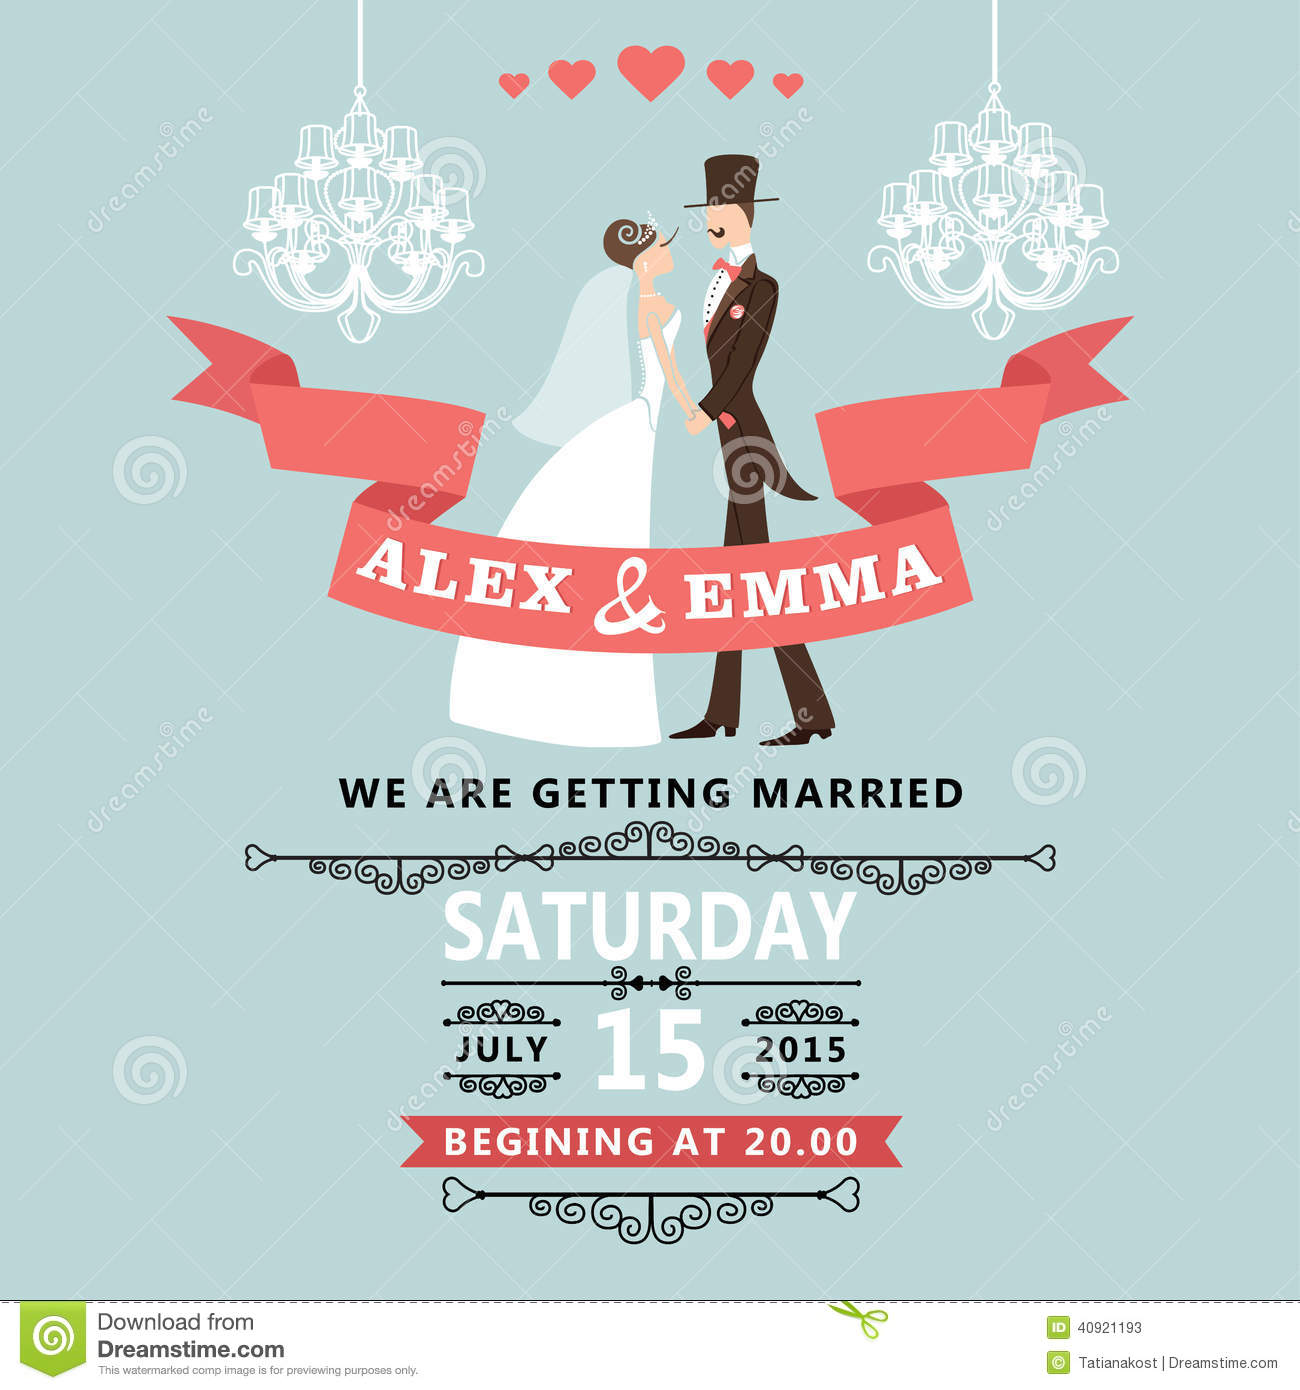 The best wedding invitations for you: Cute wedding invitations designs